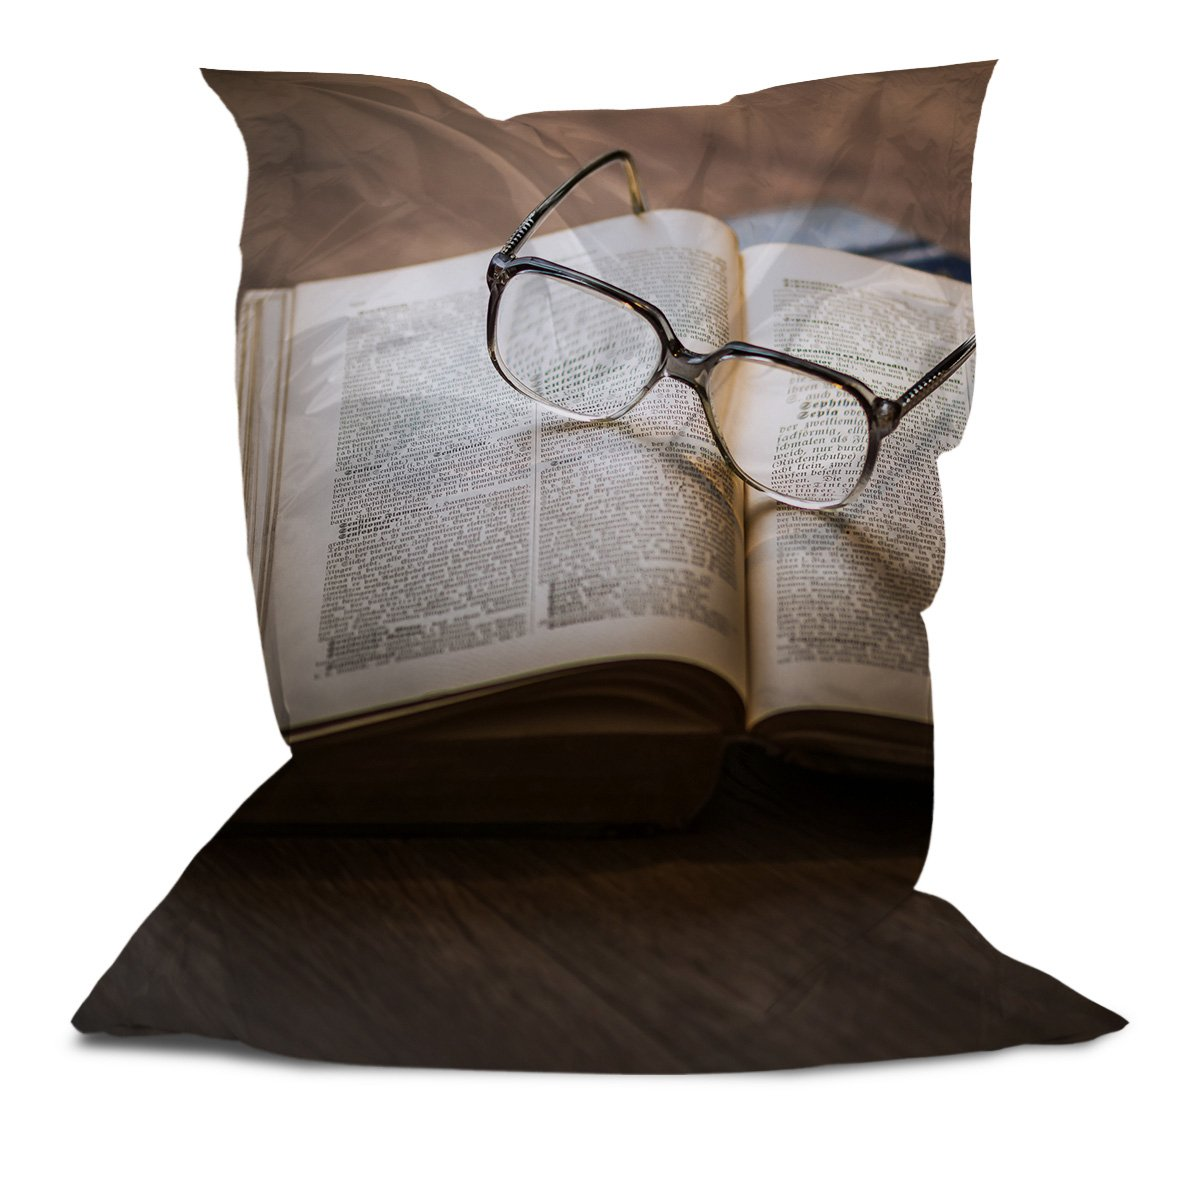 Branded Bean Bag with Printed Specs (5' x 4.4')